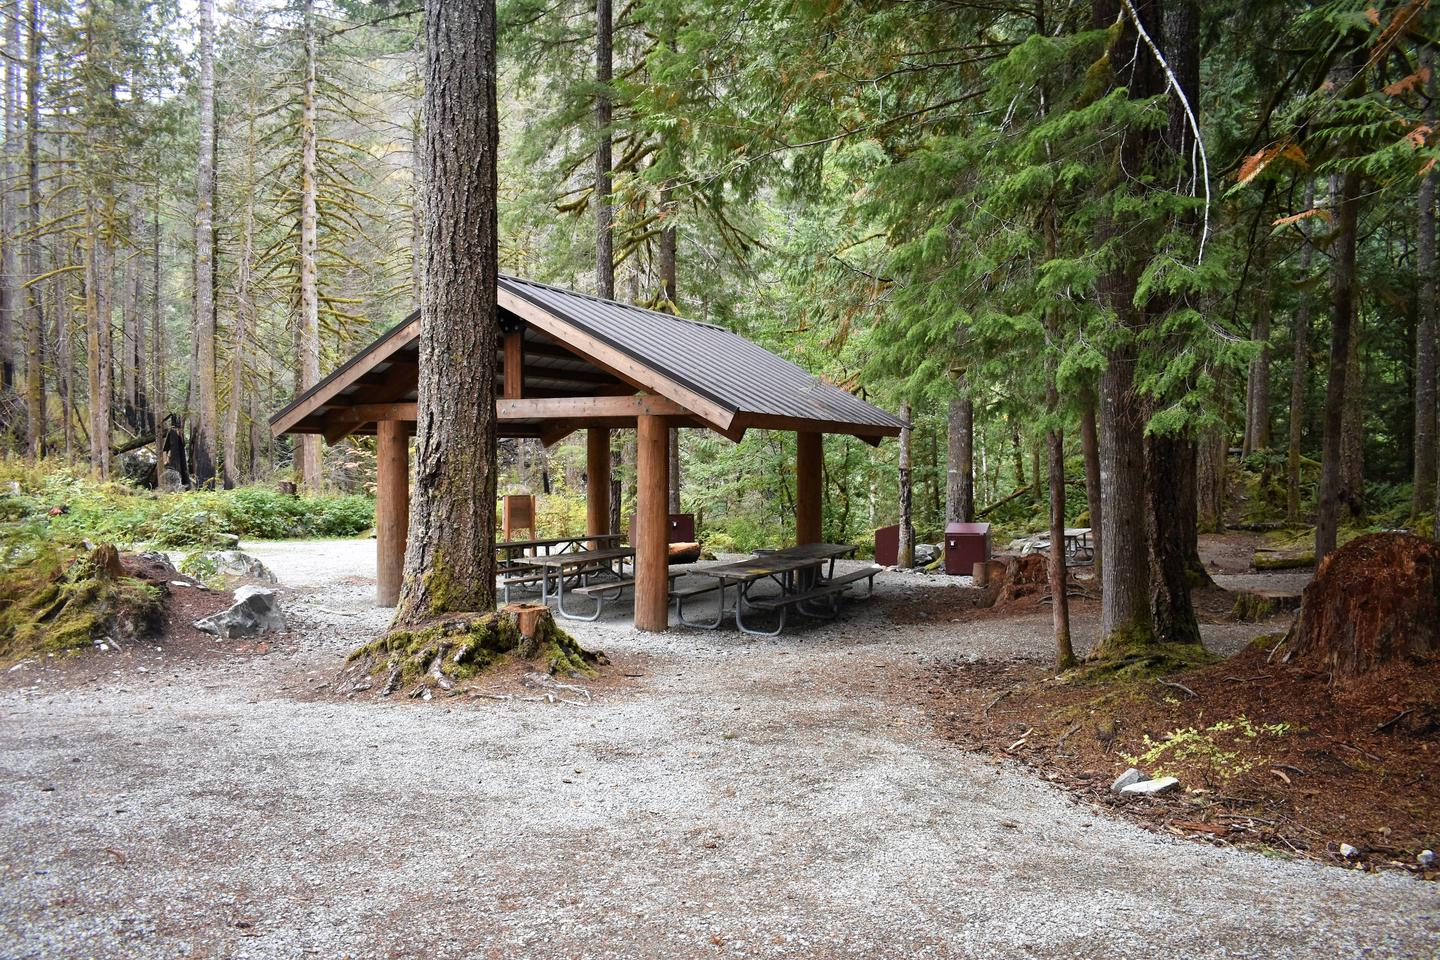 Group shelter providing rain and sun protection to several picnic tables underneathView of campsite